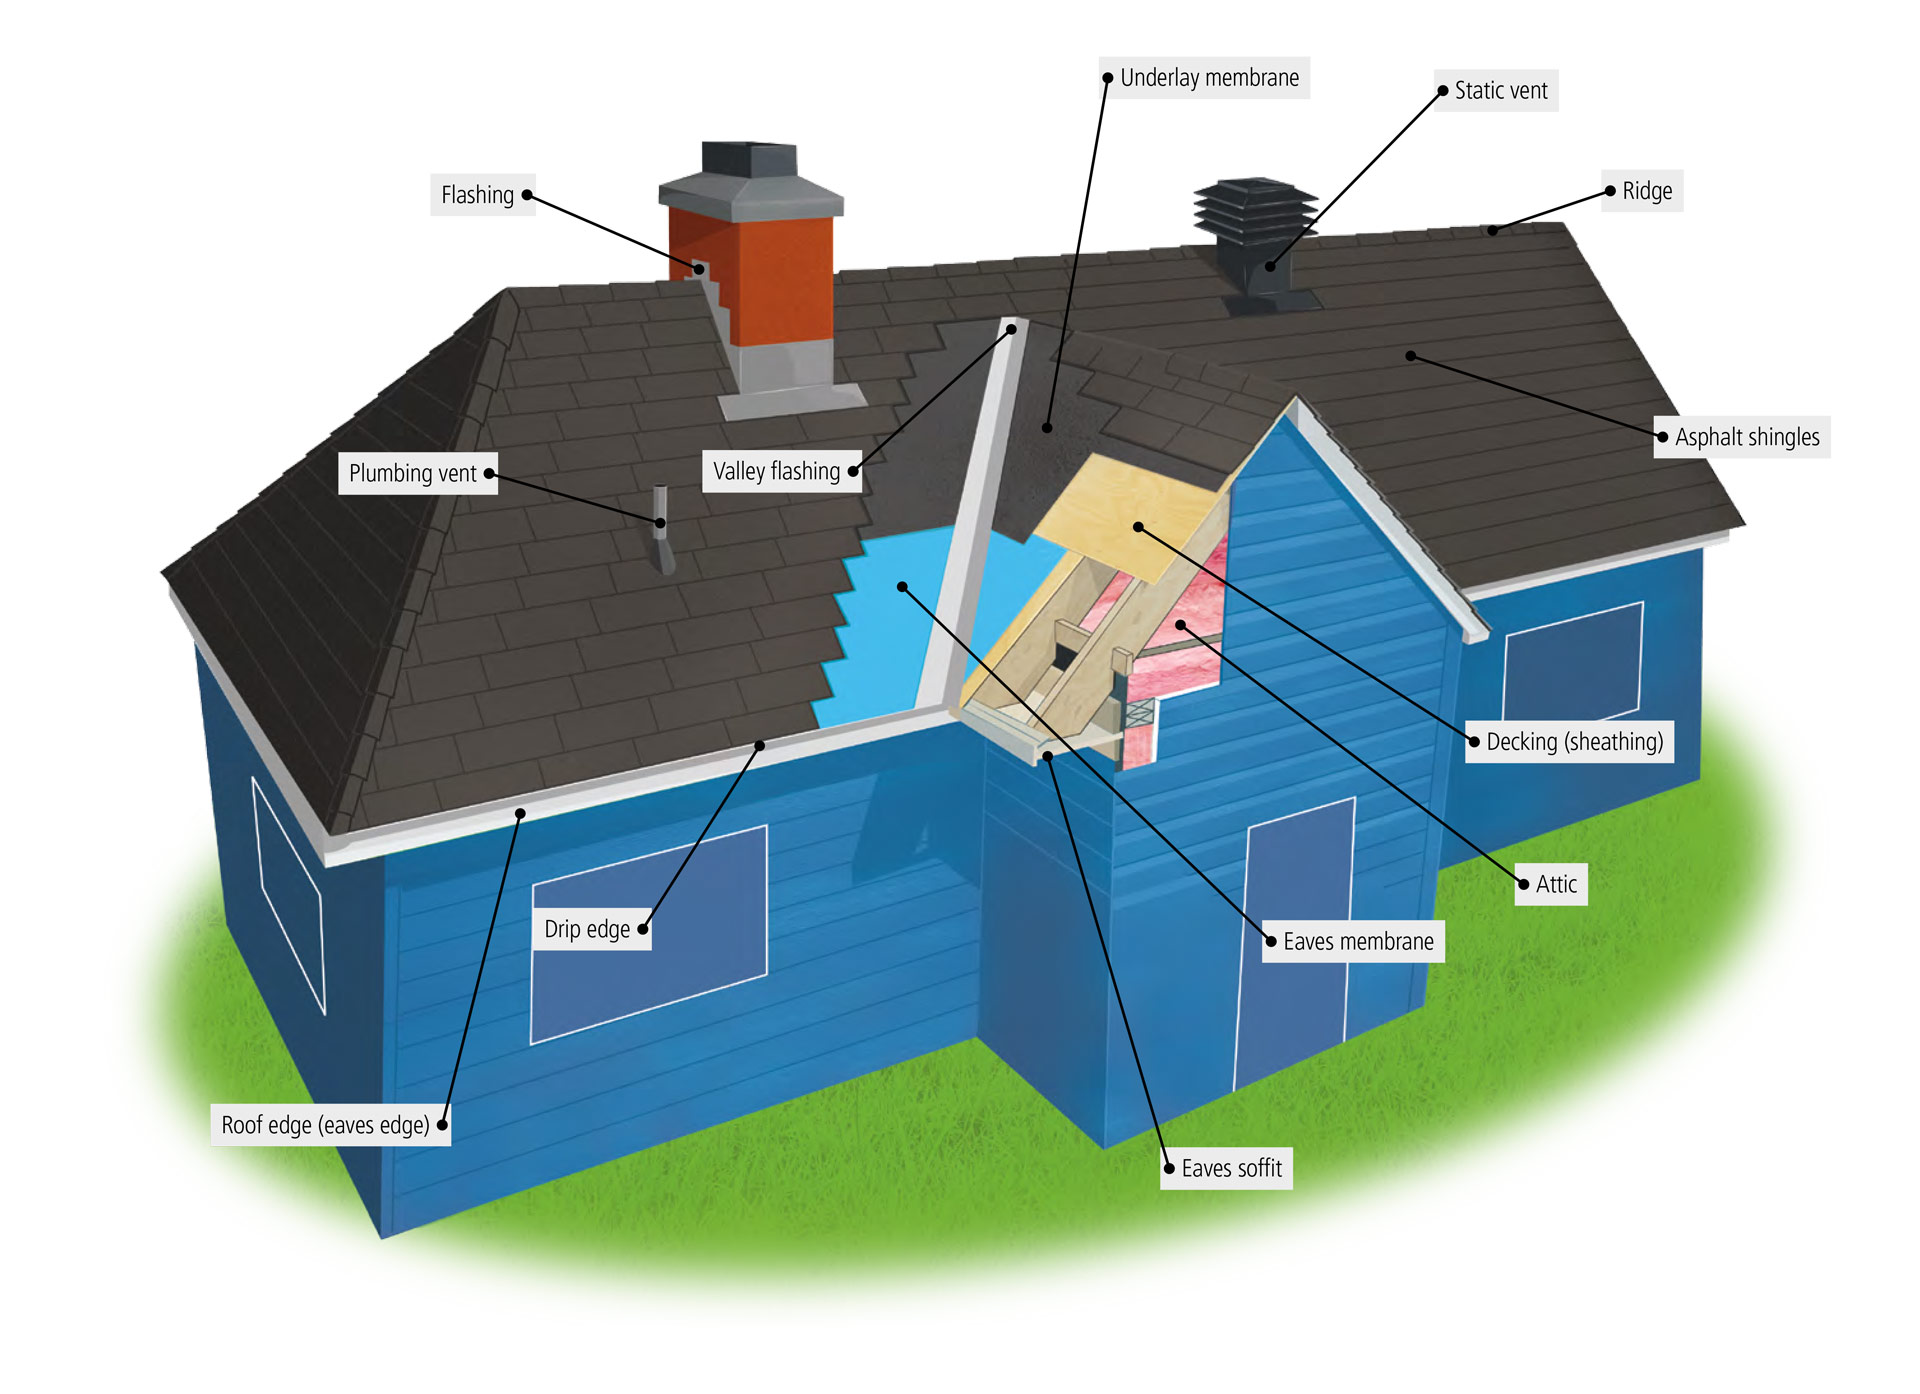 What to do if the roof flows 9